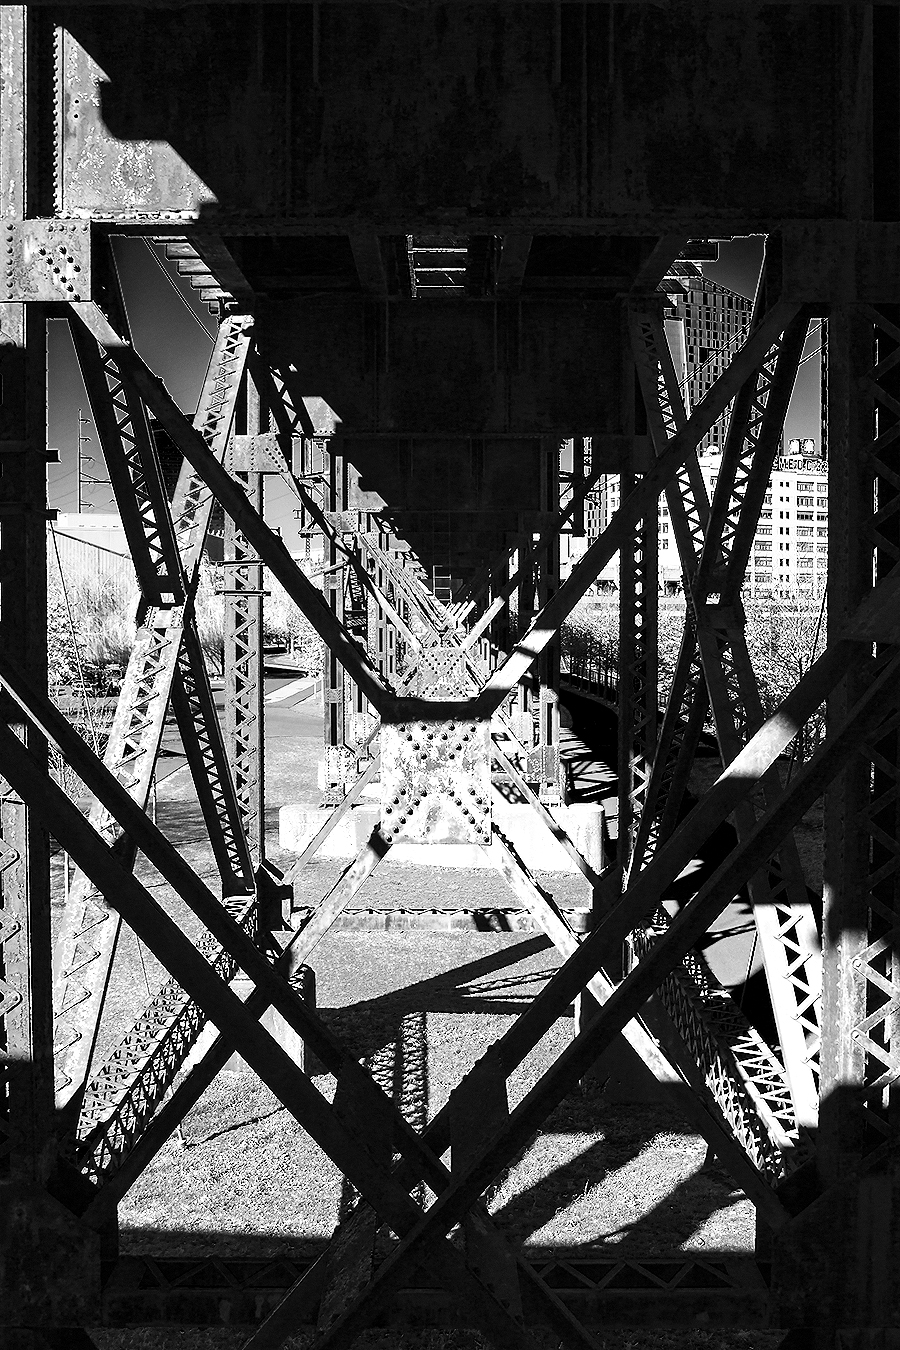 Janelle_Tong_Photography_Tony_Ward_Studio_Individual_Project_UPenn_Penn_Park_Bridges_Railroad_Tracks_Underneath_Rust_Structure_Black_and_White_2